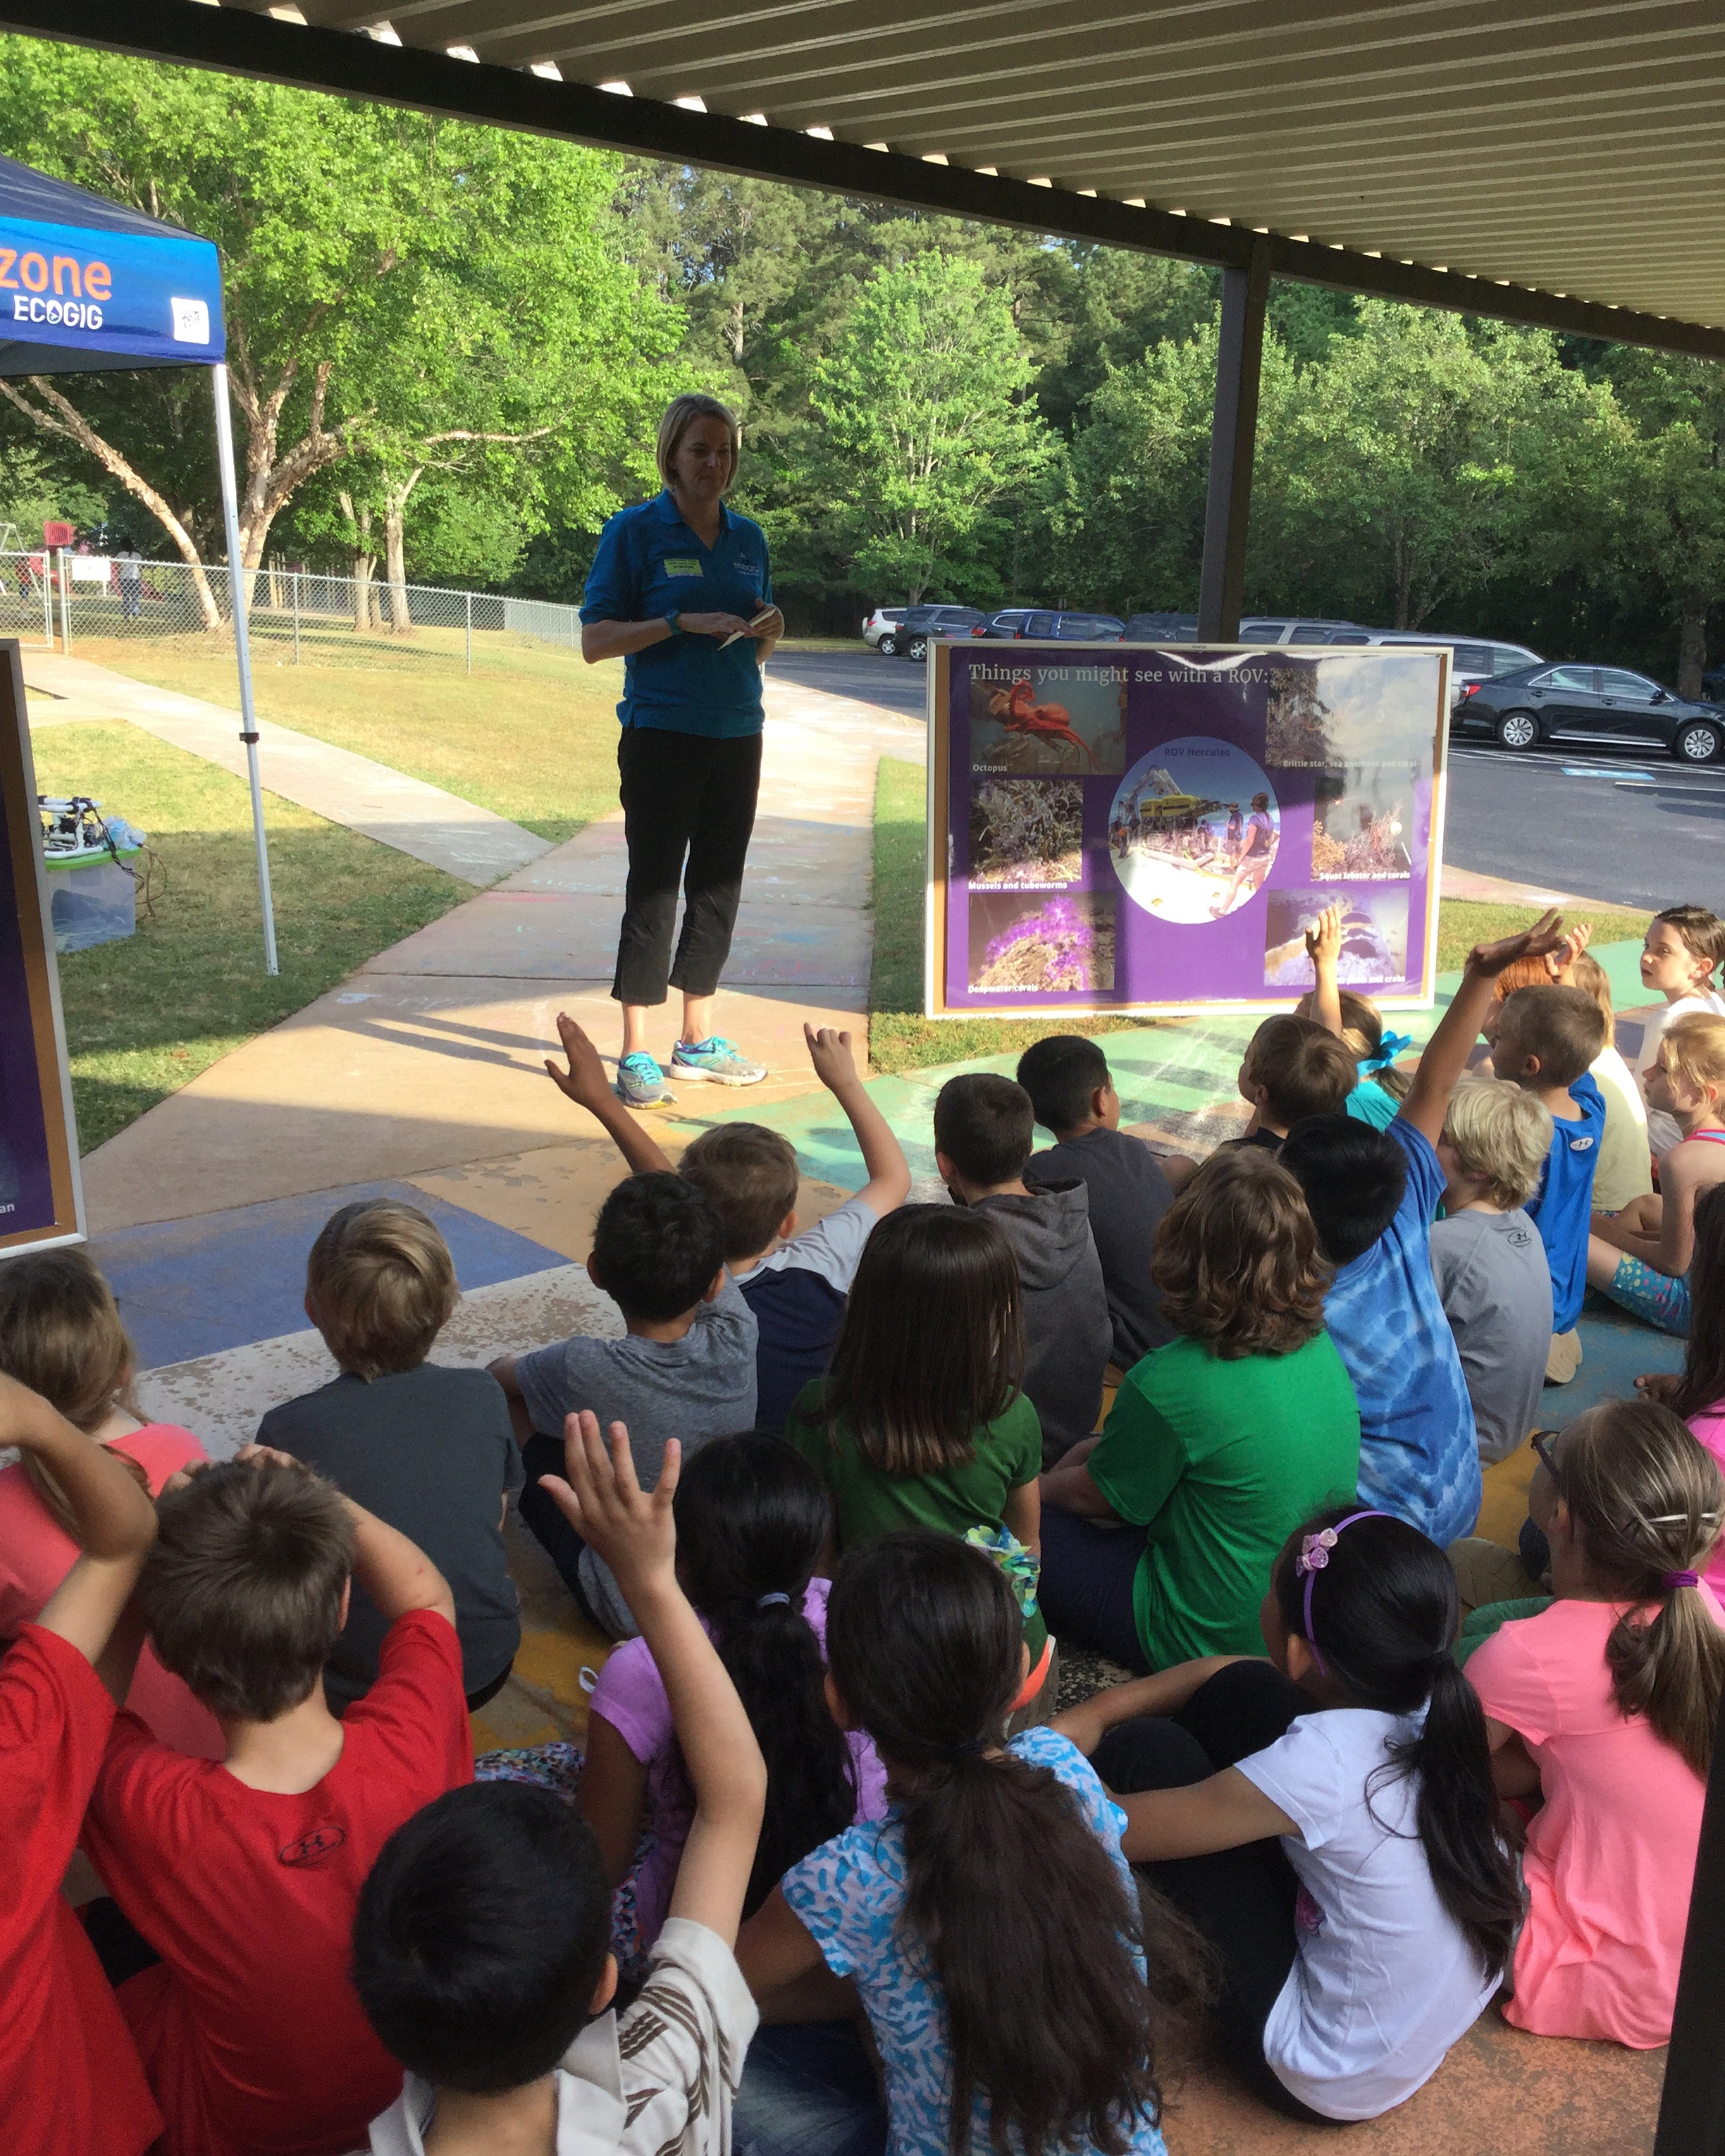 <div style='color:#000000;'><br /><br /><h2>2016 Oconee Primary School visit. ECOGIG Outreach and Communications Lead Sara Beresford talks to students about why and how we explore the oceans.</h2>(c) ECOGIG</div>